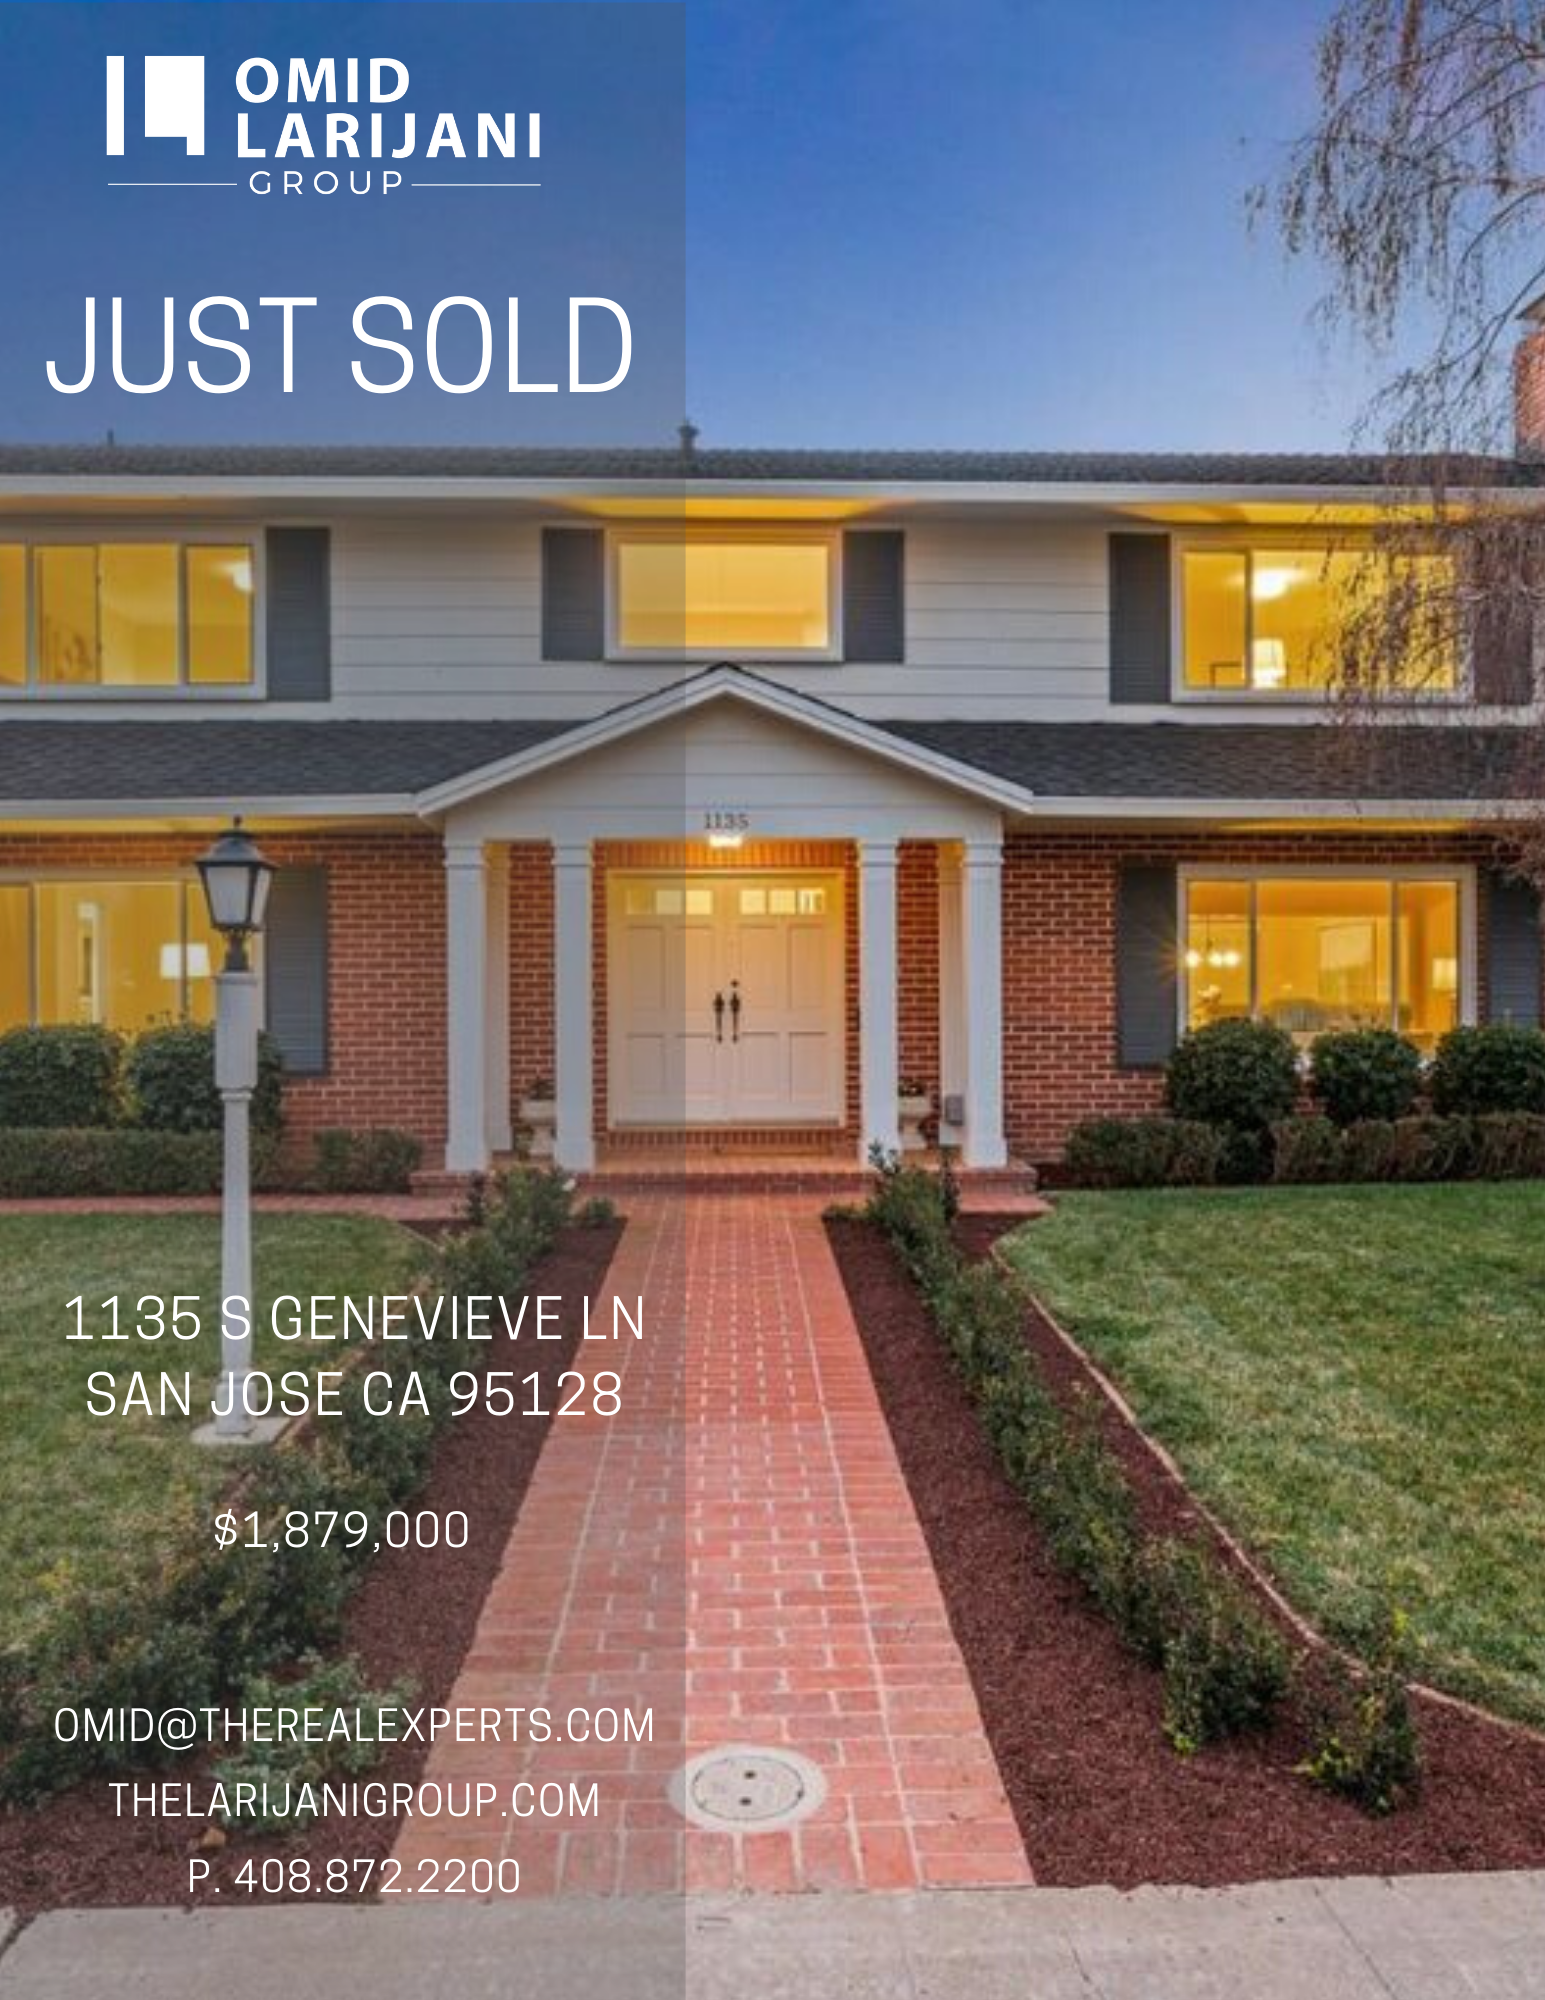 🏡 JUST SOLD! Thank you for trusting me as your #RealEstateExpert!  #realestate #properties #santaclara #sanjose #sunnyvale #cupertino #losgatos #willowglen #campbell #saratoga #mountainview #paloalto #milpitas #fremont #redwoodcity #houses #investor #investment #siliconvalley #siliconvalleyrealestate #siliconvalleyproperties #homesforsale #california #bayarea #realestatebroker #realestateinvestor #homebuyers #larijanigroup #realtor